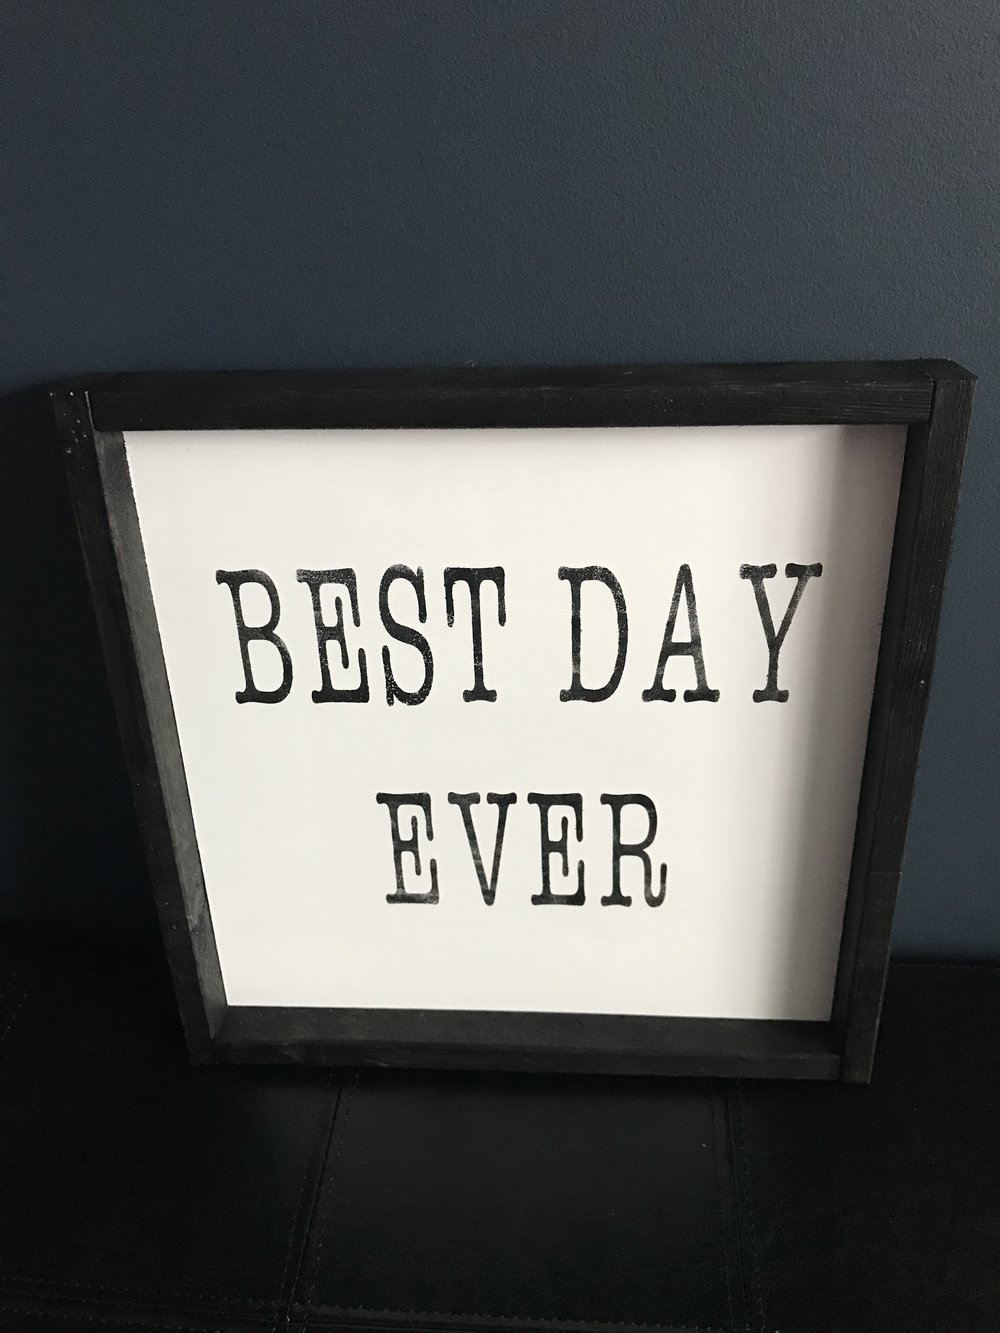 12X12 BEST DAY EVER - THIS CAN BE CUSTOMIZED WITH A SPECIAL DATE  FRAMED IN BLACK/GRAY - $35 OR $40 TO ADD DATE